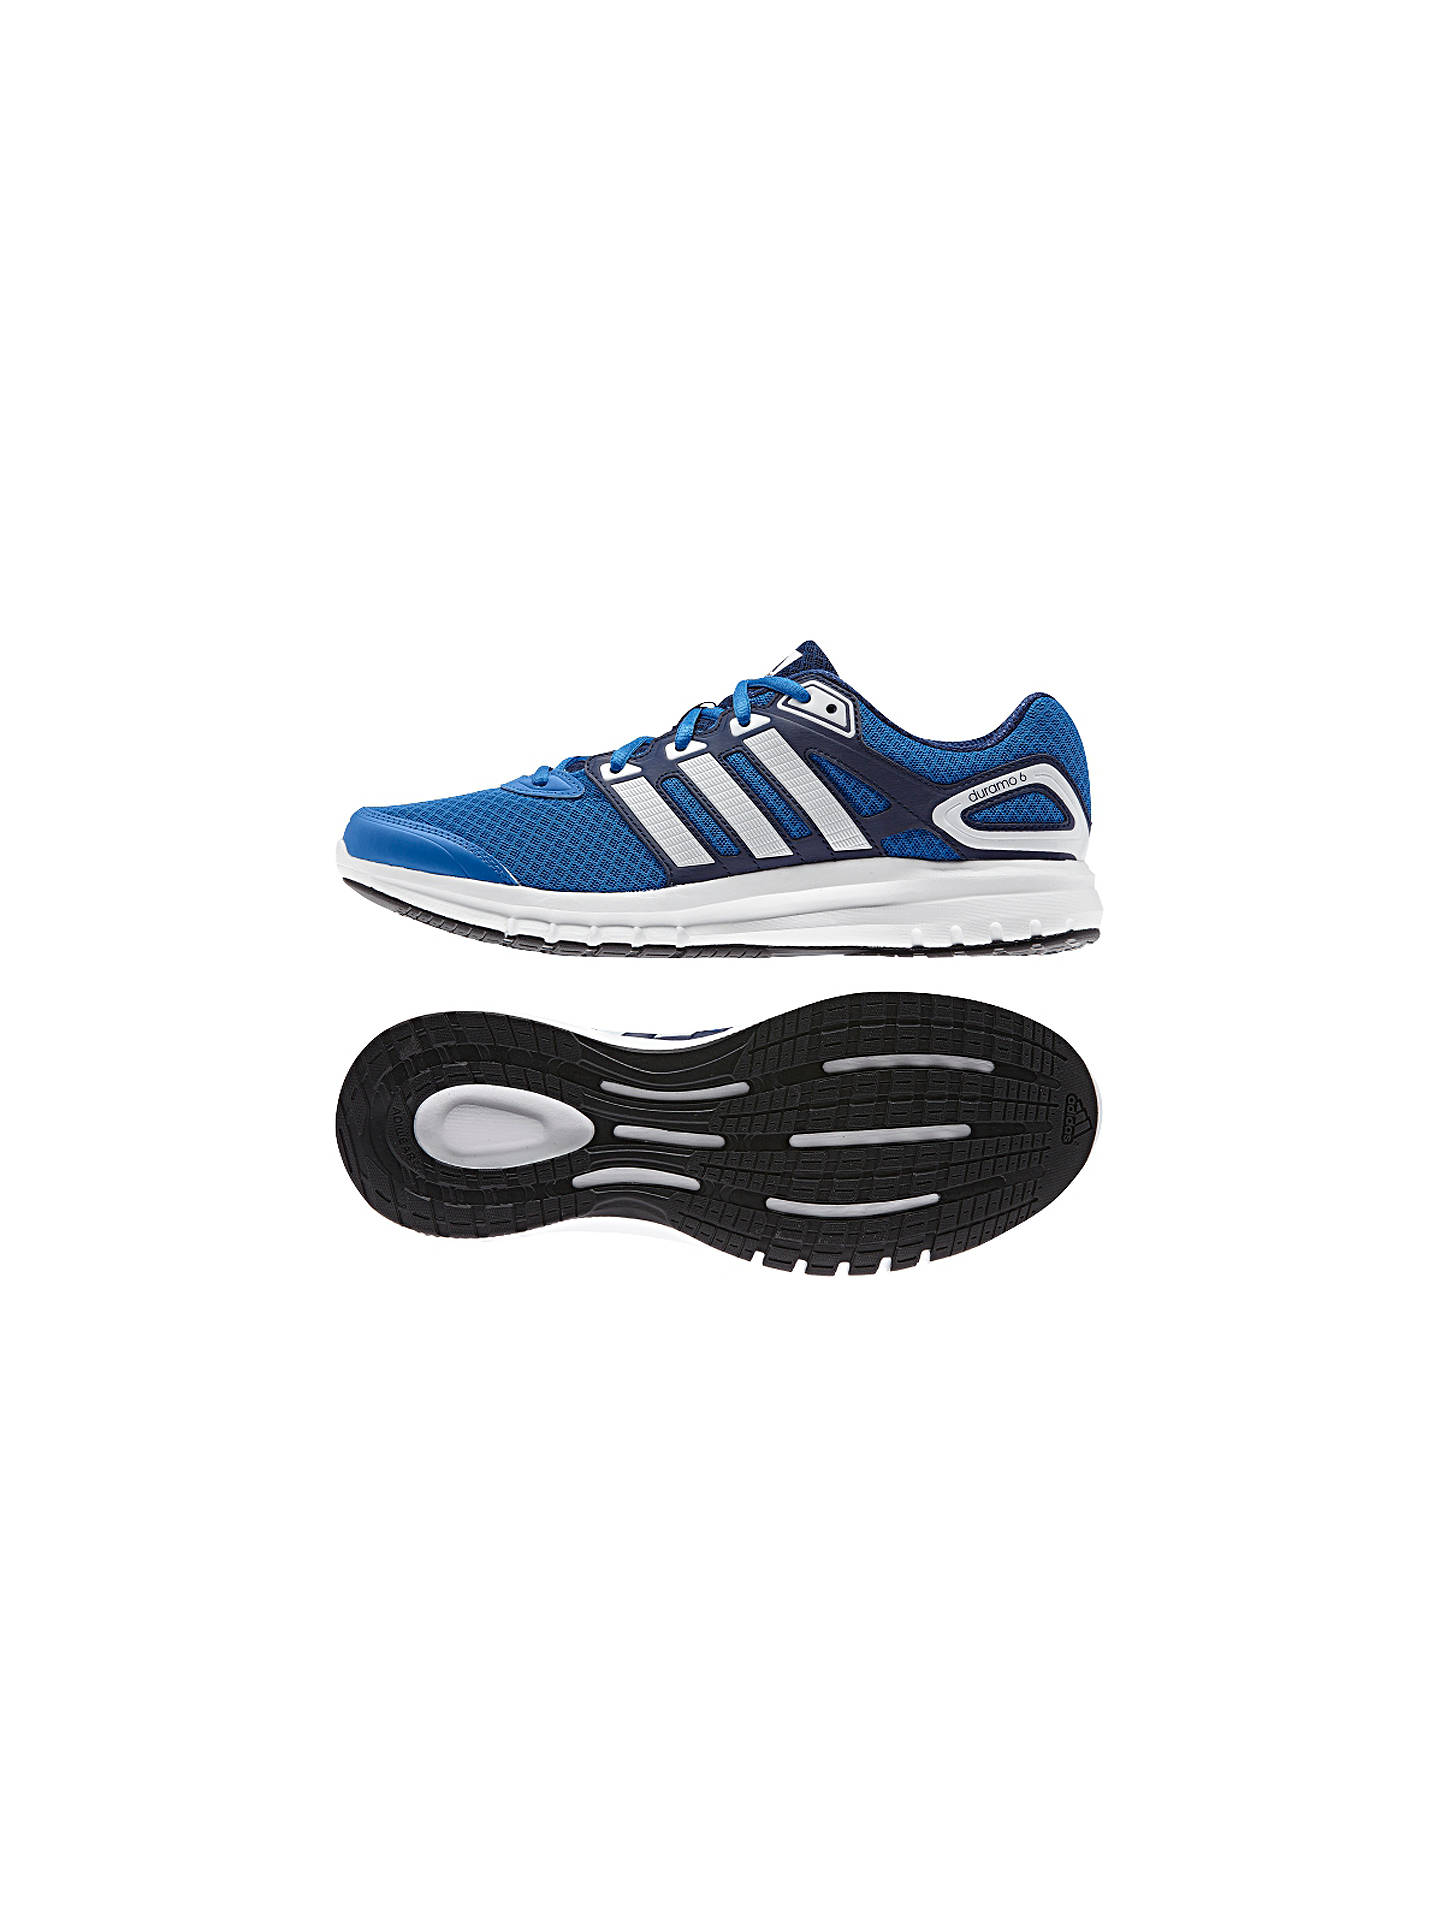 newest 4bf83 e781d ... BuyAdidas Duramo 6 Men s Running Shoes, Bright Royal, 11 Online at  johnlewis. ...